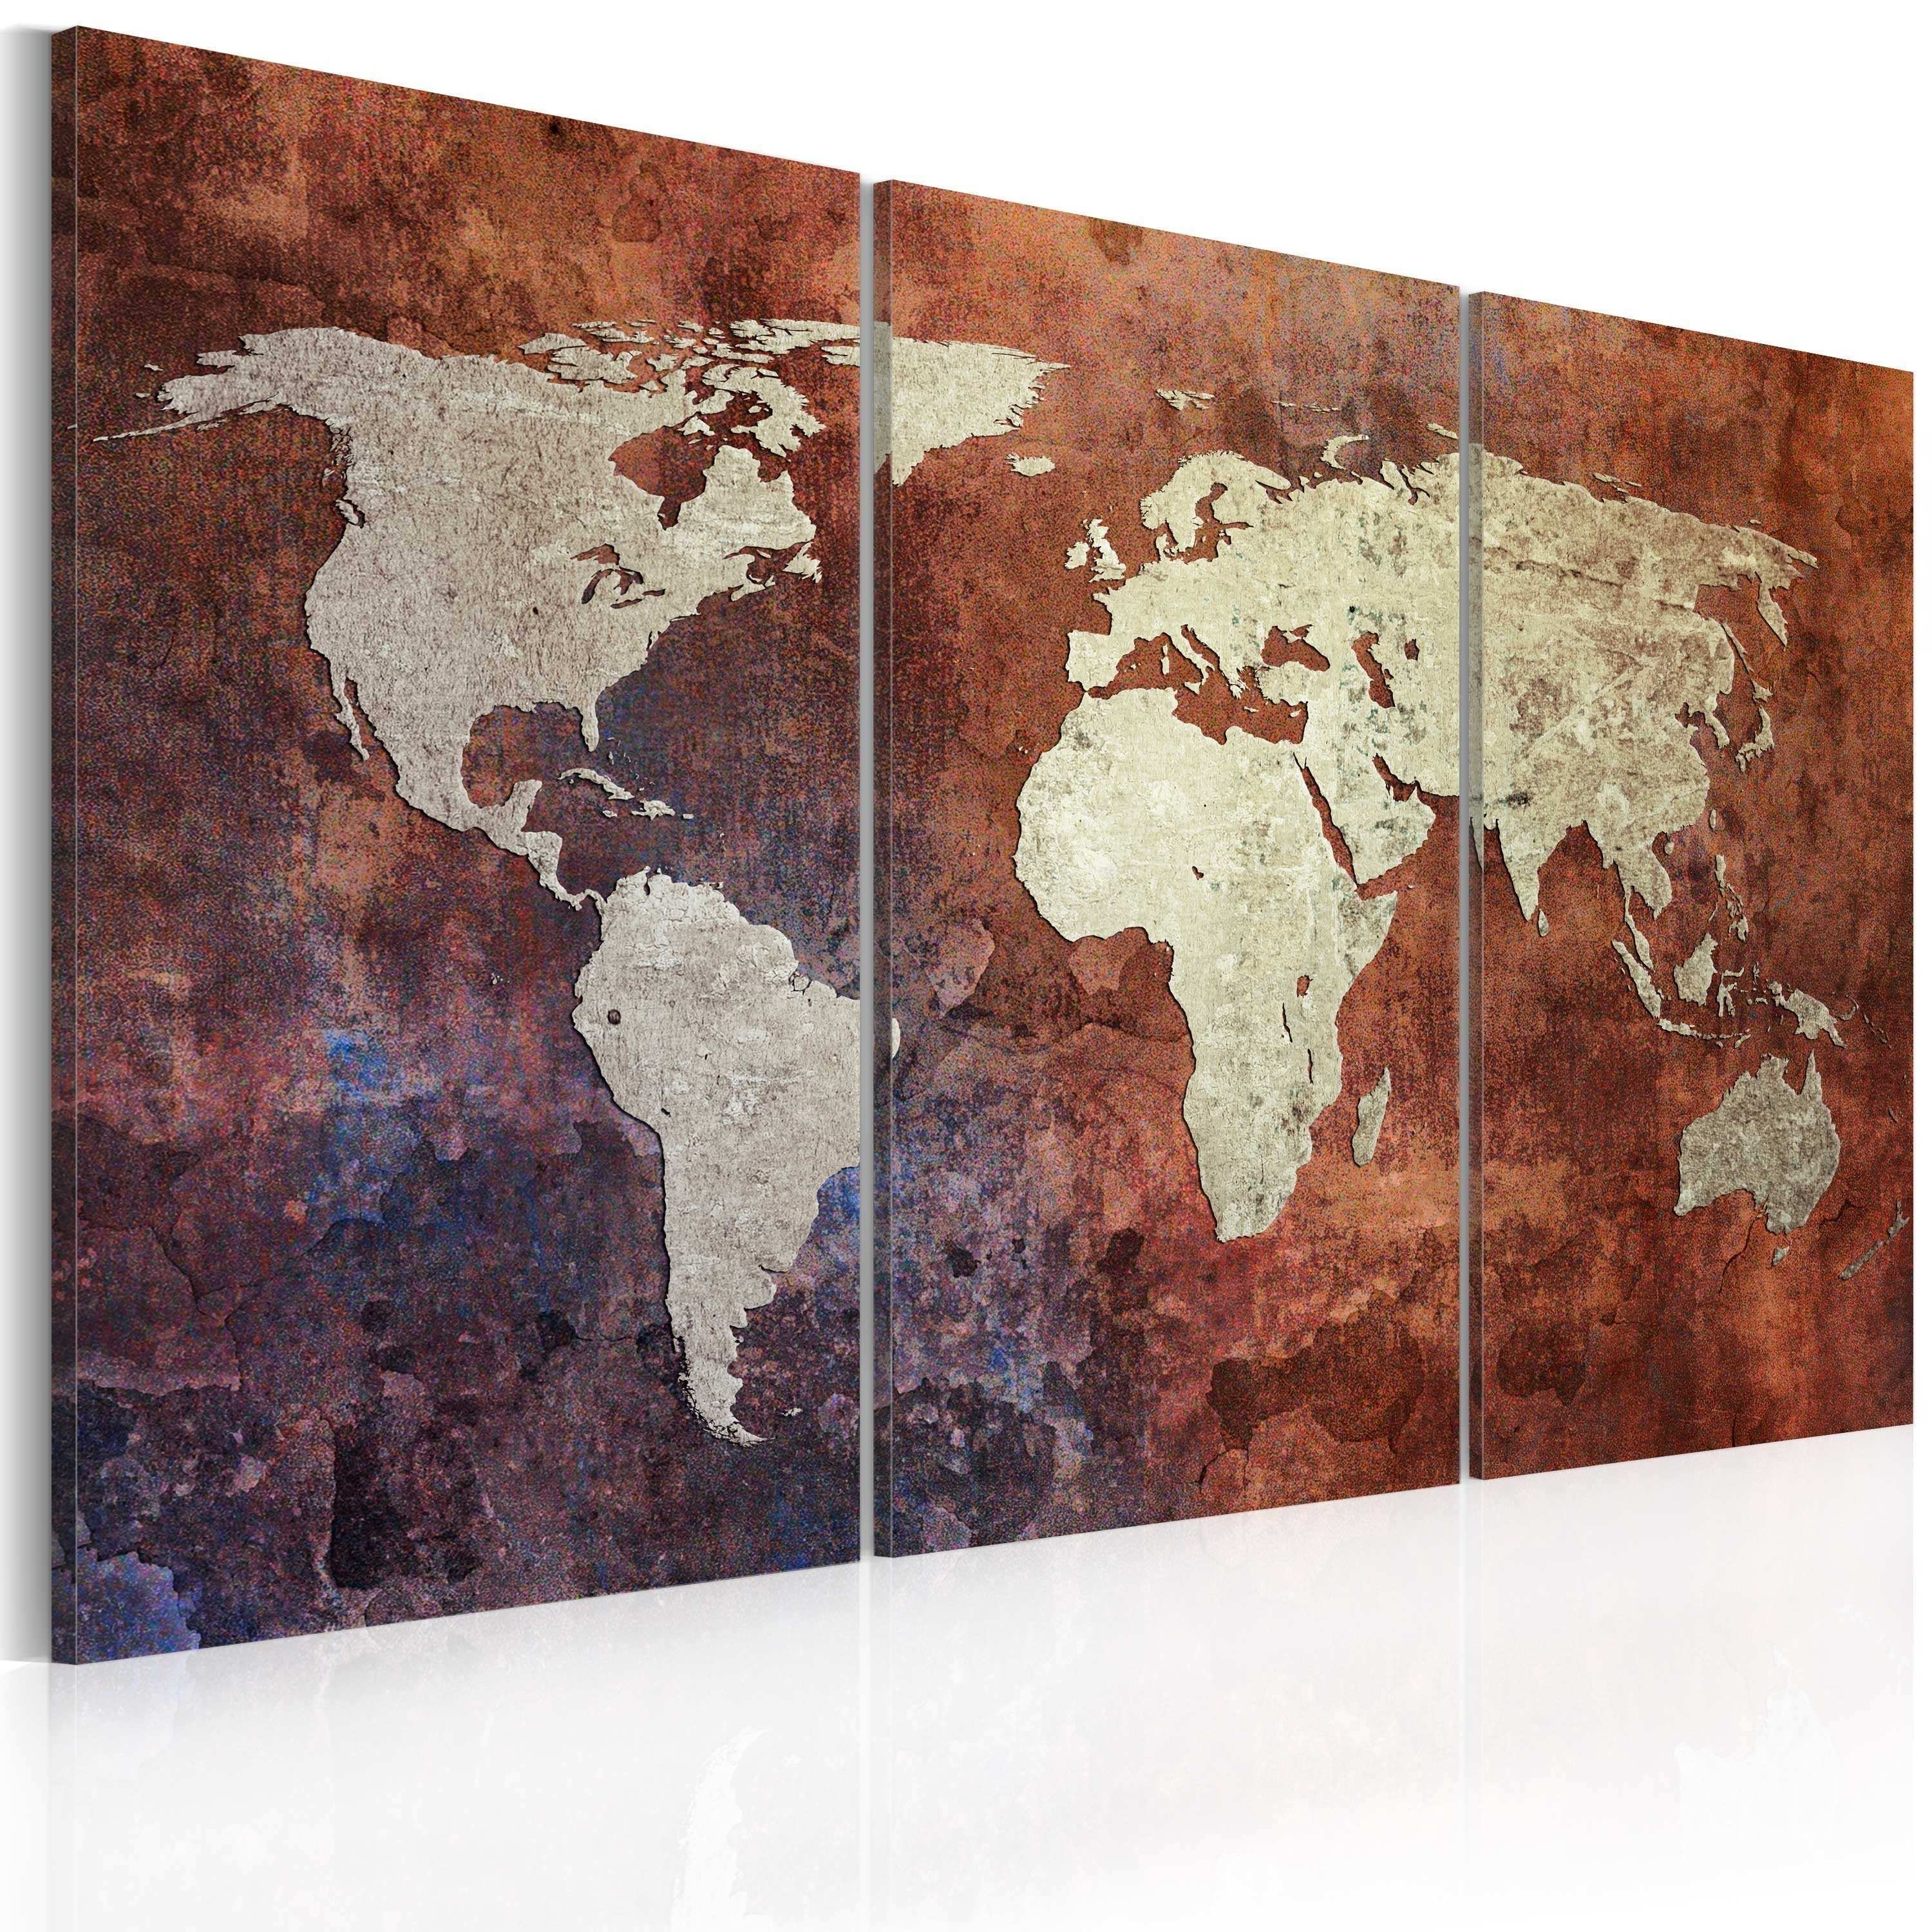 World Market Metal Wall Art Beautiful Canvas Print Rusty Map Of The Intended For World Market Wall Art (Photo 2 of 20)